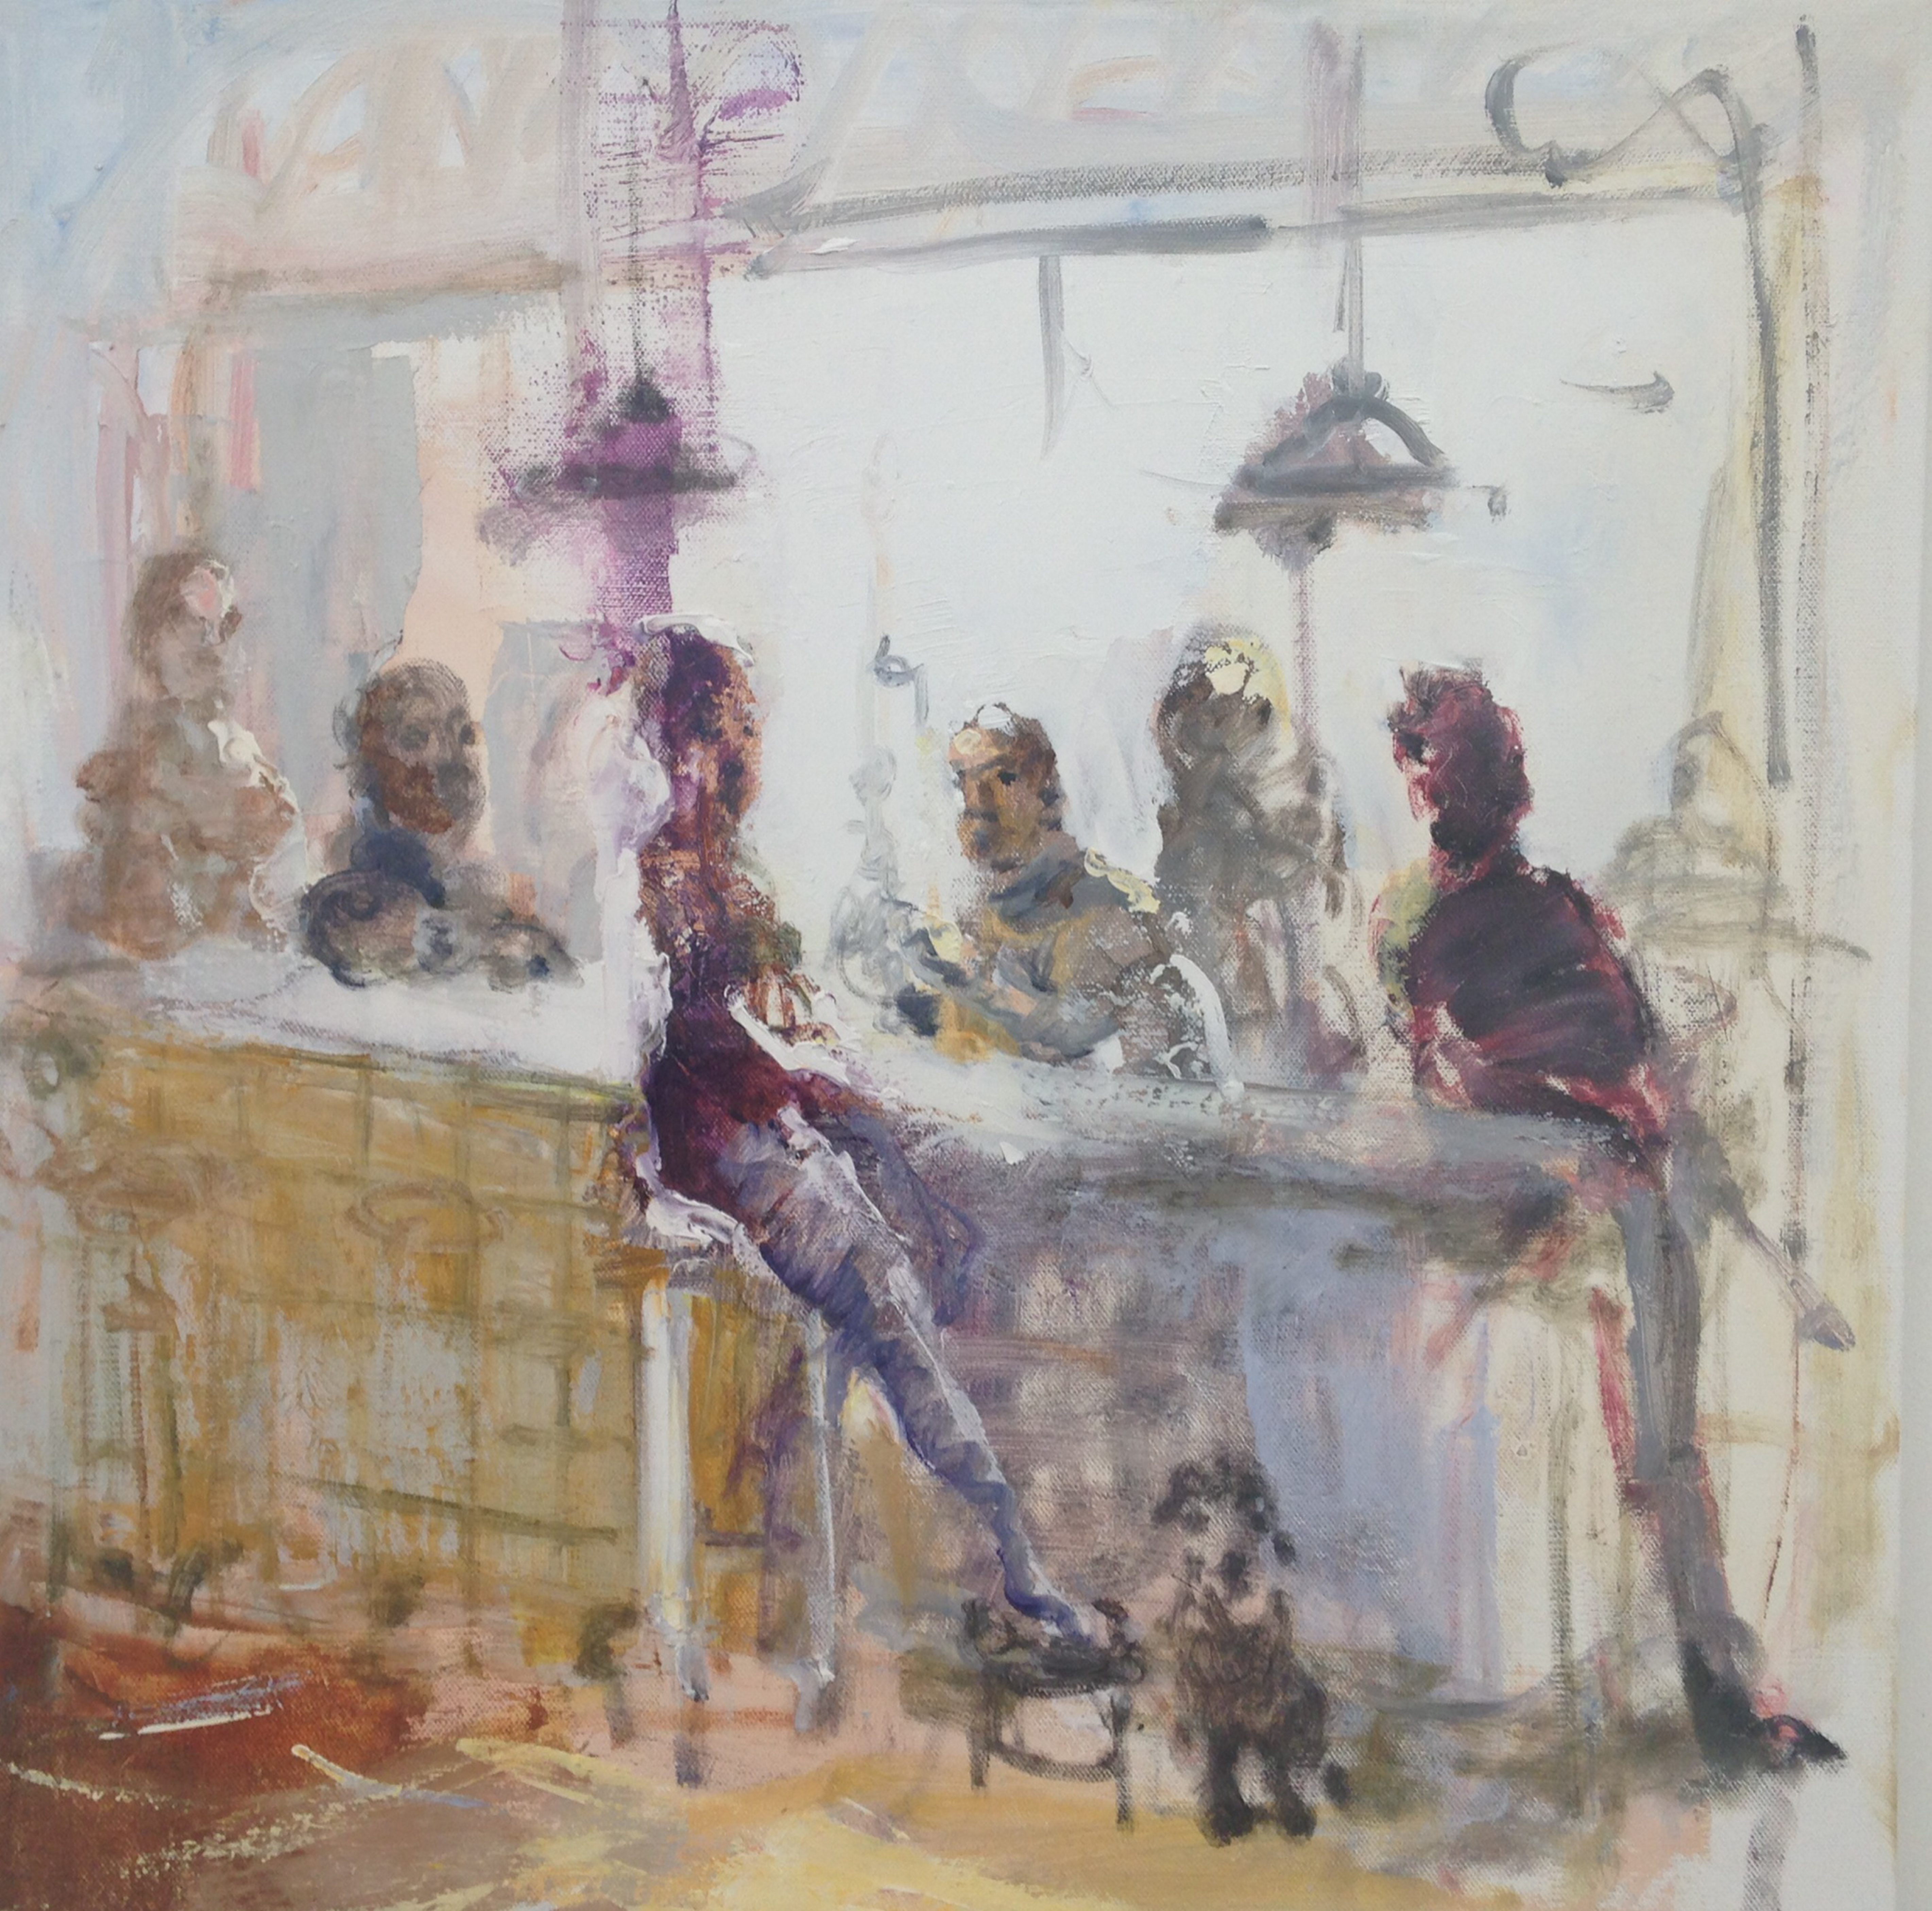 """Peter Fowler's 2016 painting """"Happy Hourwith Canine"""" is part of the inaugural group show in the Paper Moon Gallery on Franklin Street."""